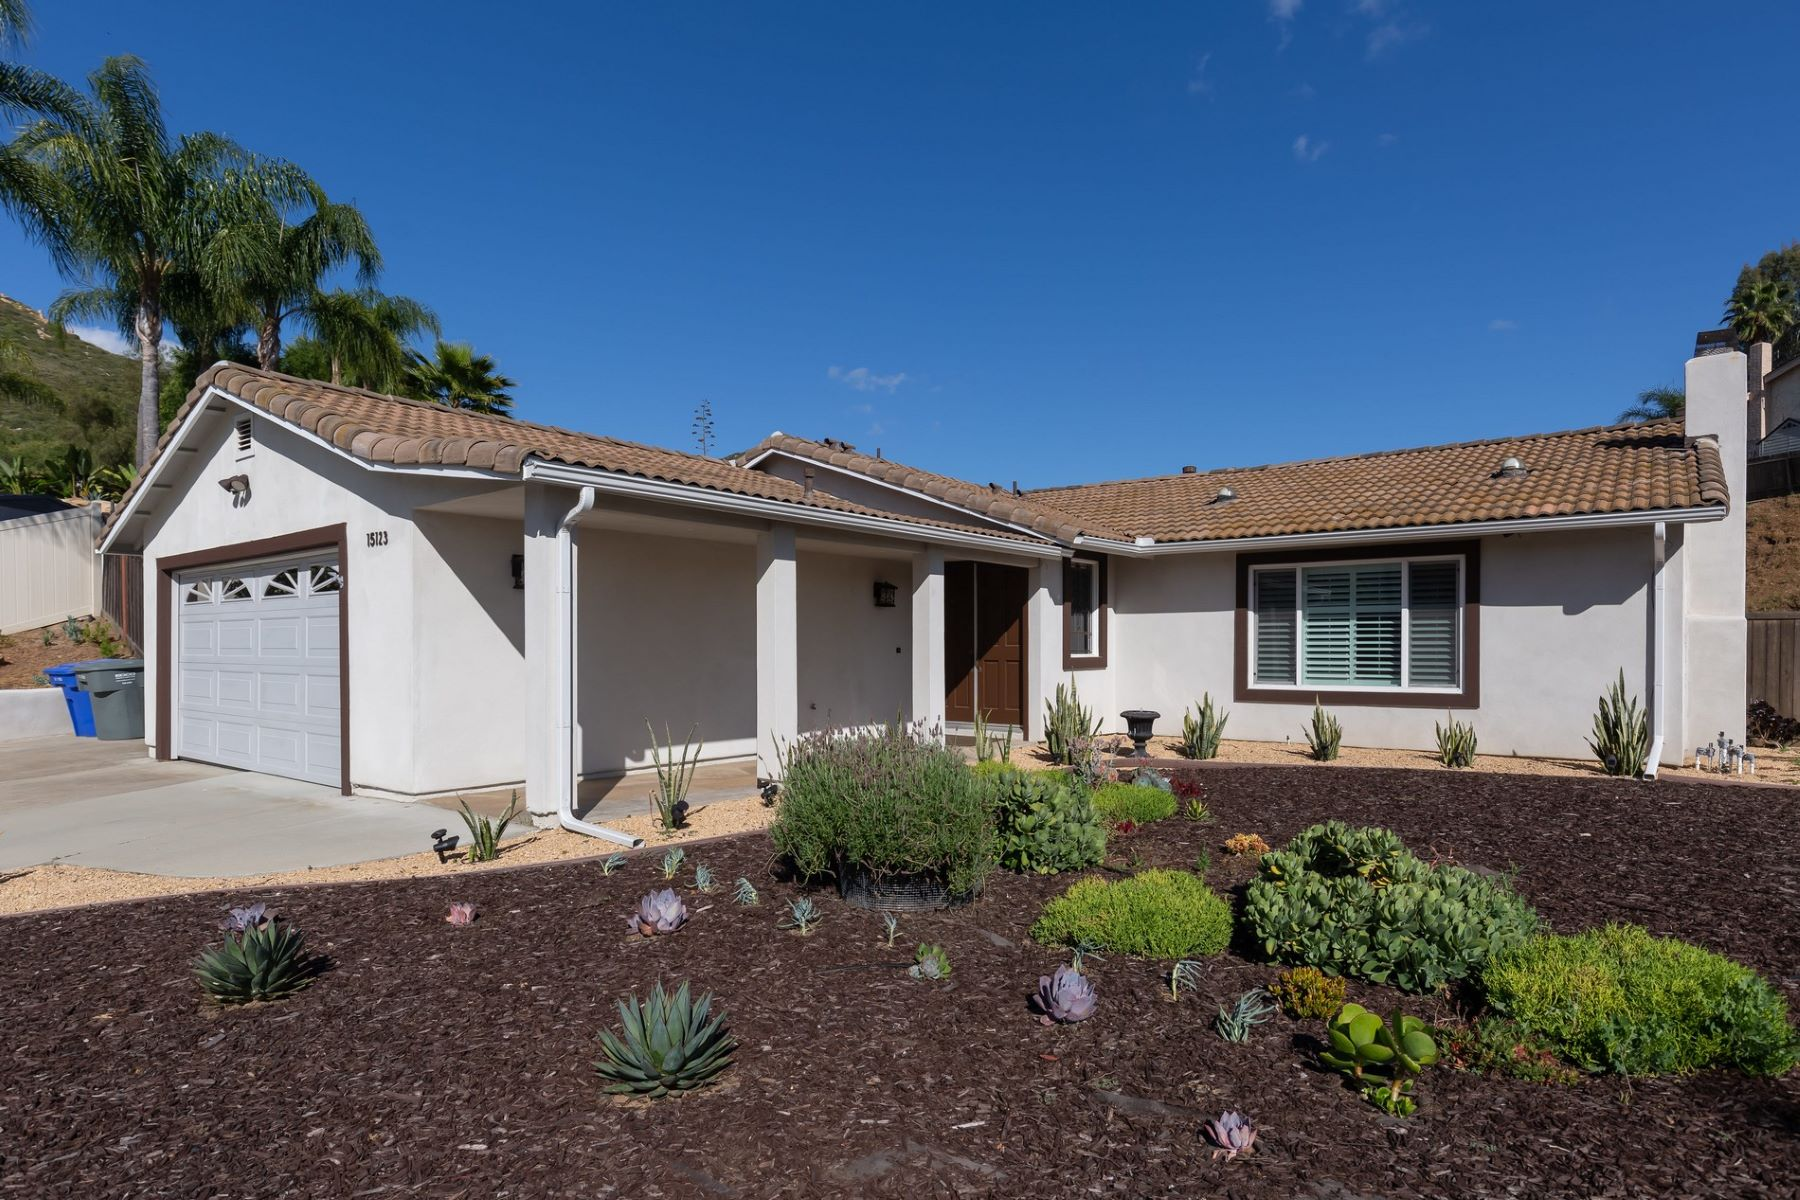 Single Family Homes for Sale at 15123 Larry Street 15123 Larry St Poway, California 92064 United States